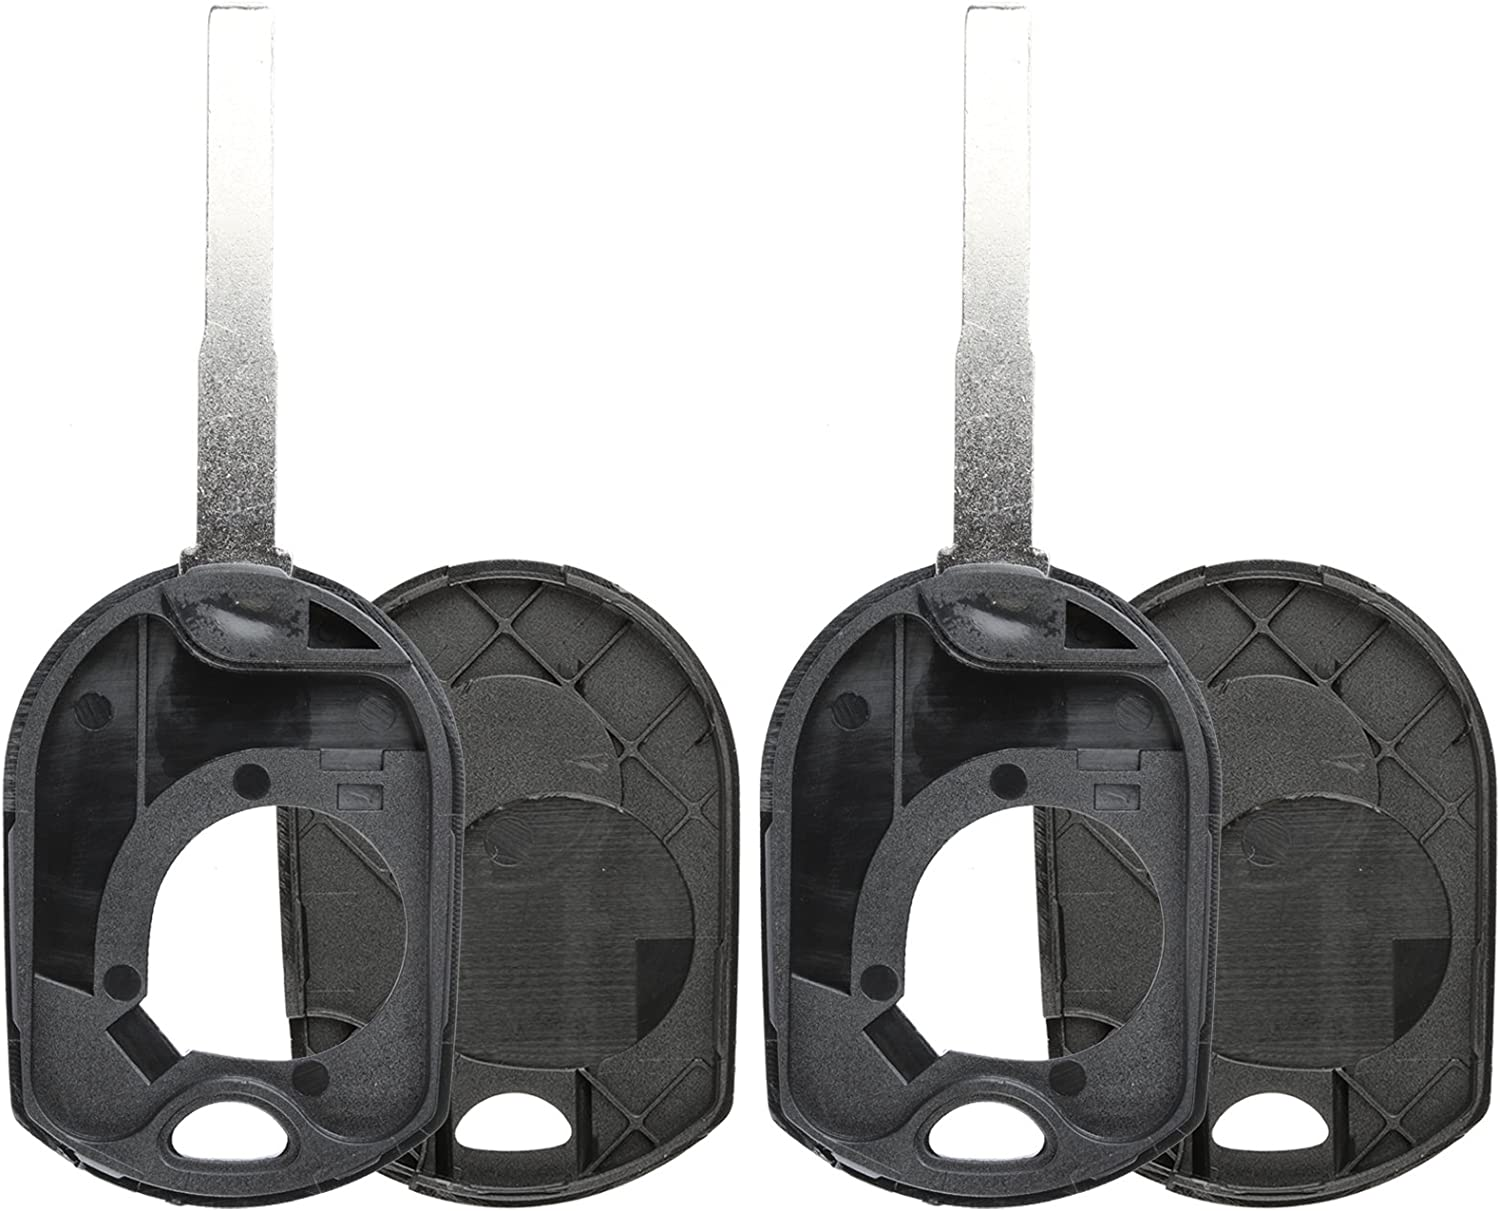 KeylessOption Keyless Entry Remote High Sec Ignition Key Blade Fob Shell Case Cover for Ford Pack of 2